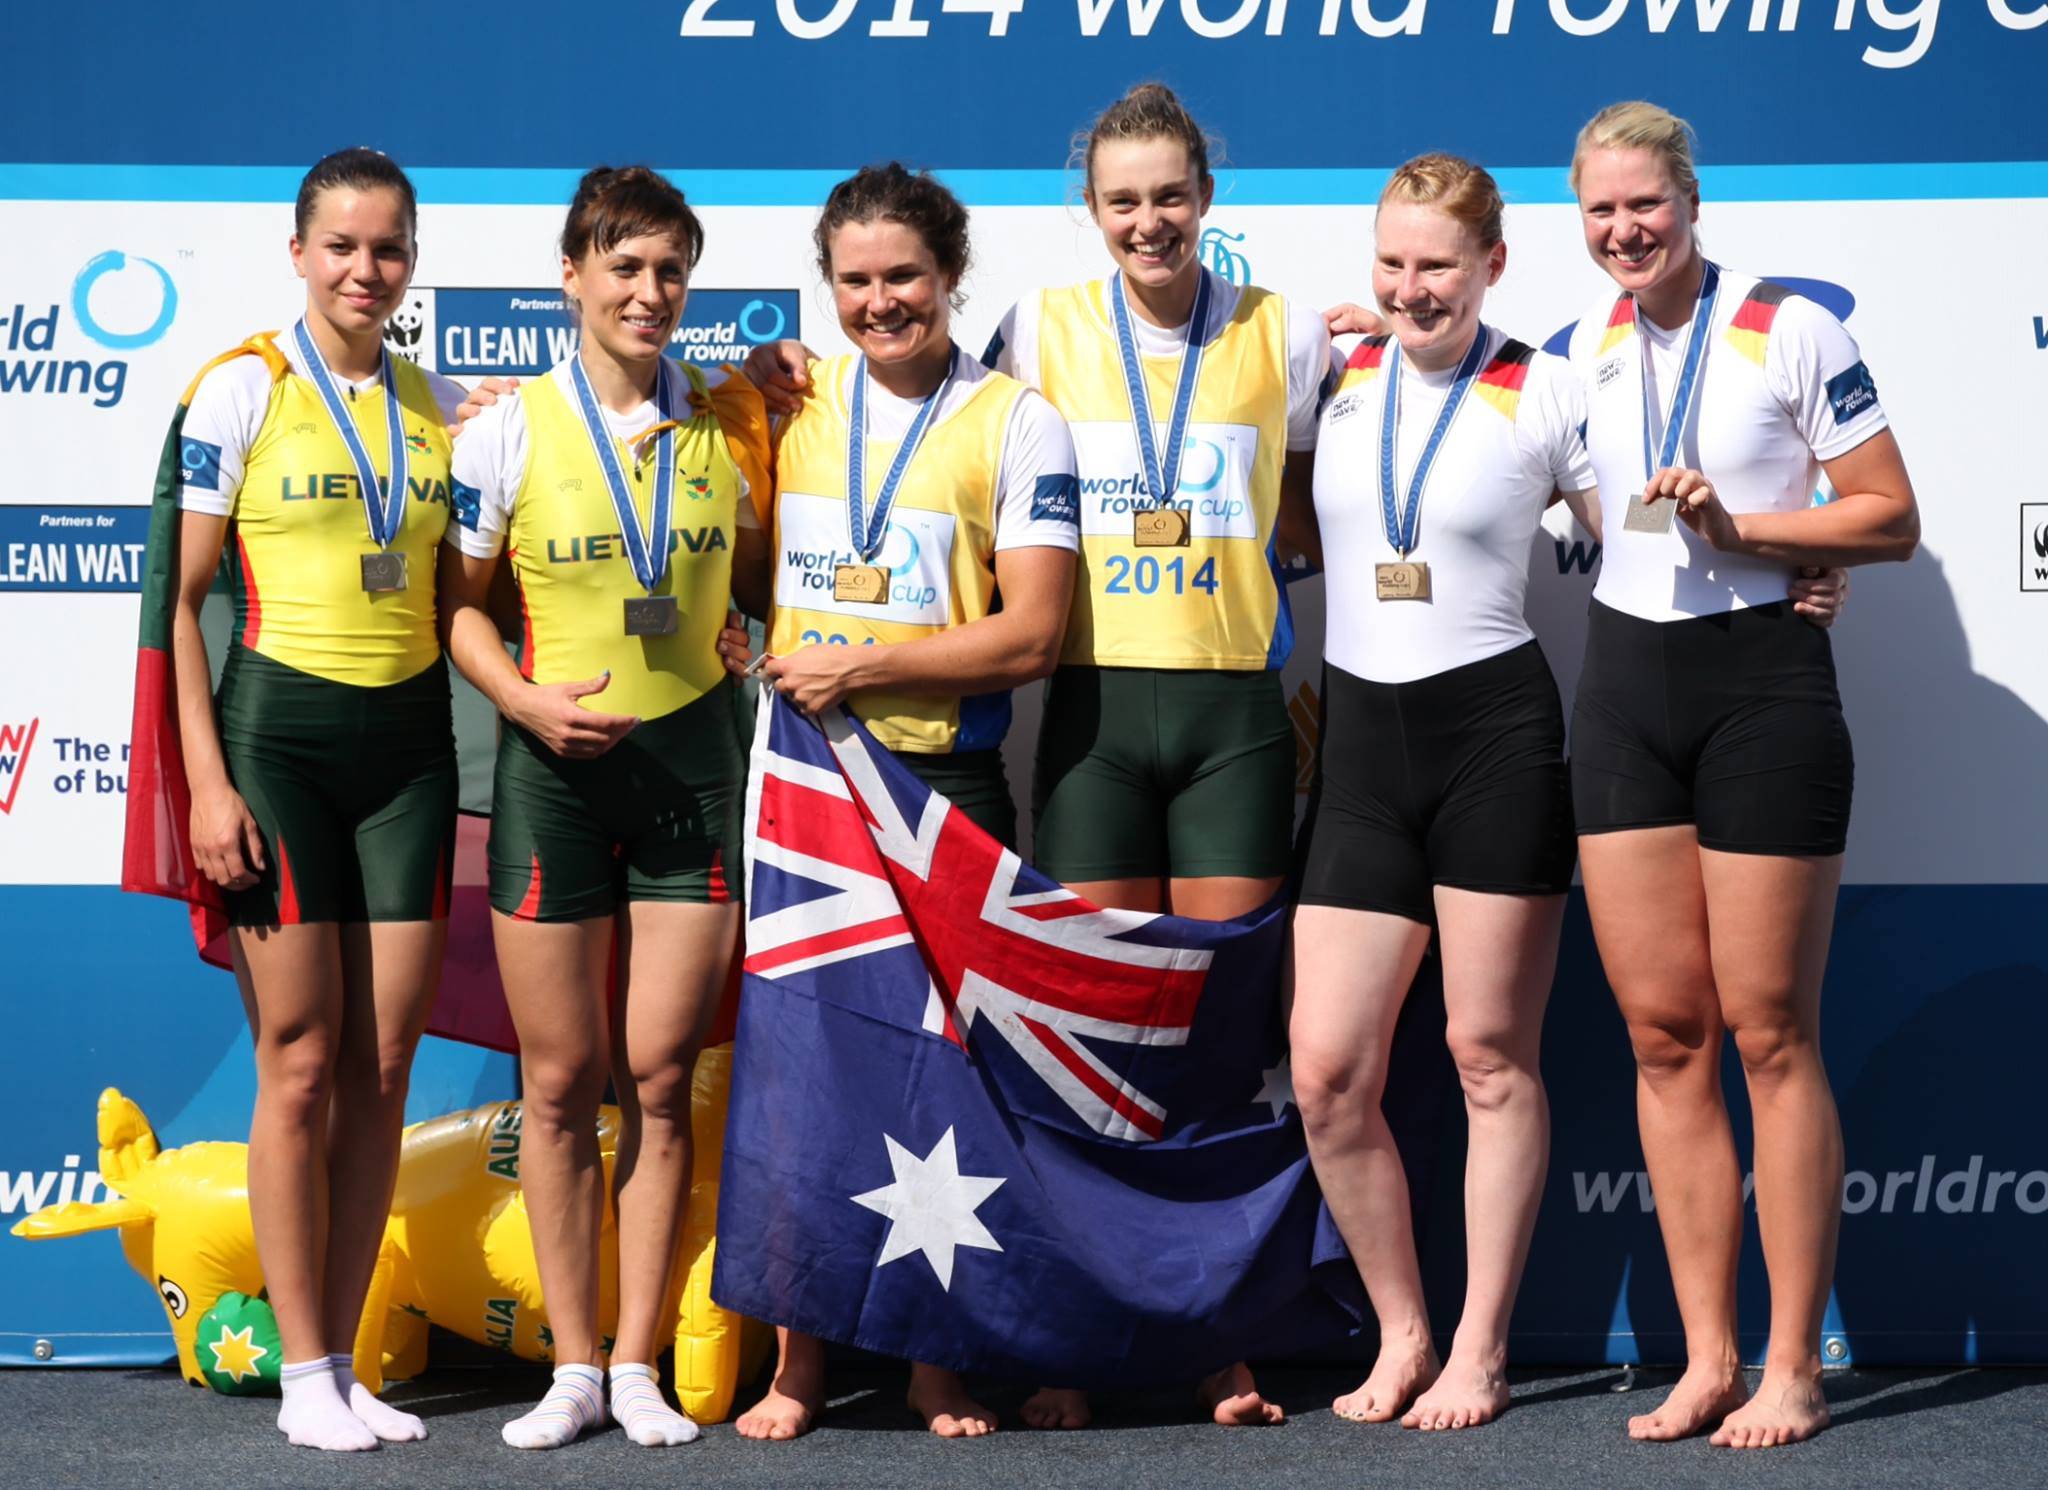 Sally Kehoe - gold in women's double scull - World Cup 1 2014